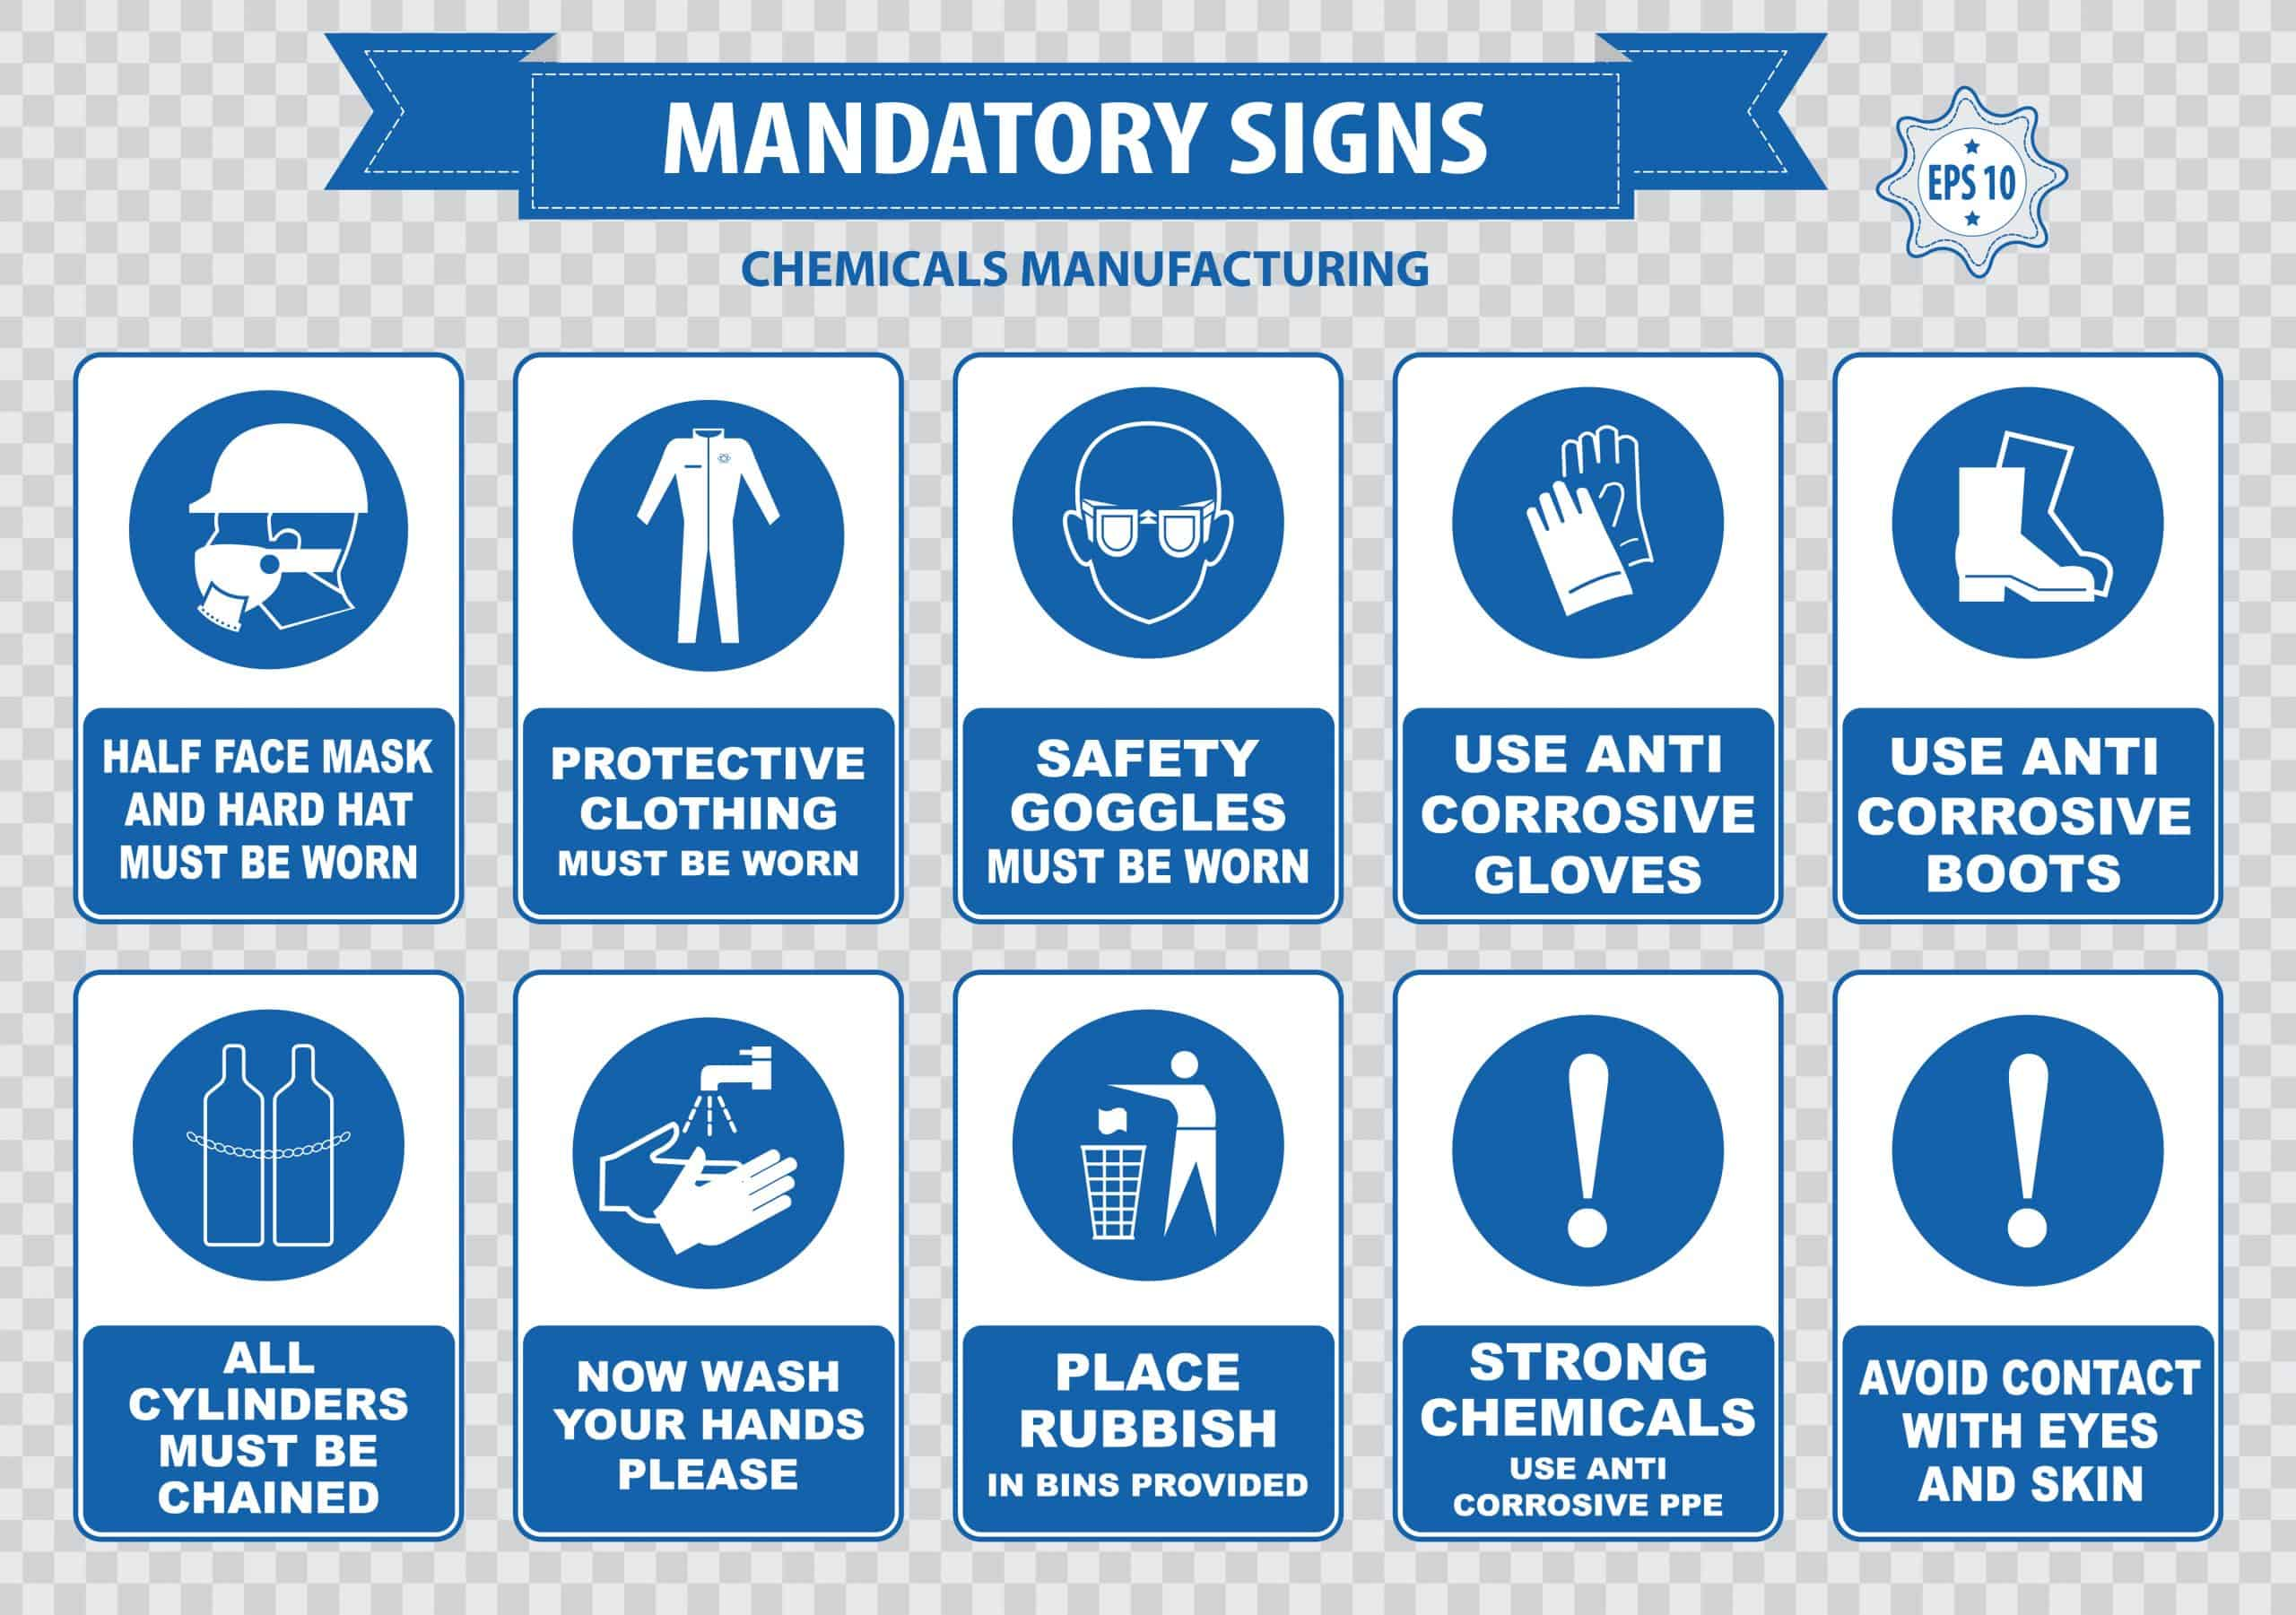 Key chemical manufacturing regulations